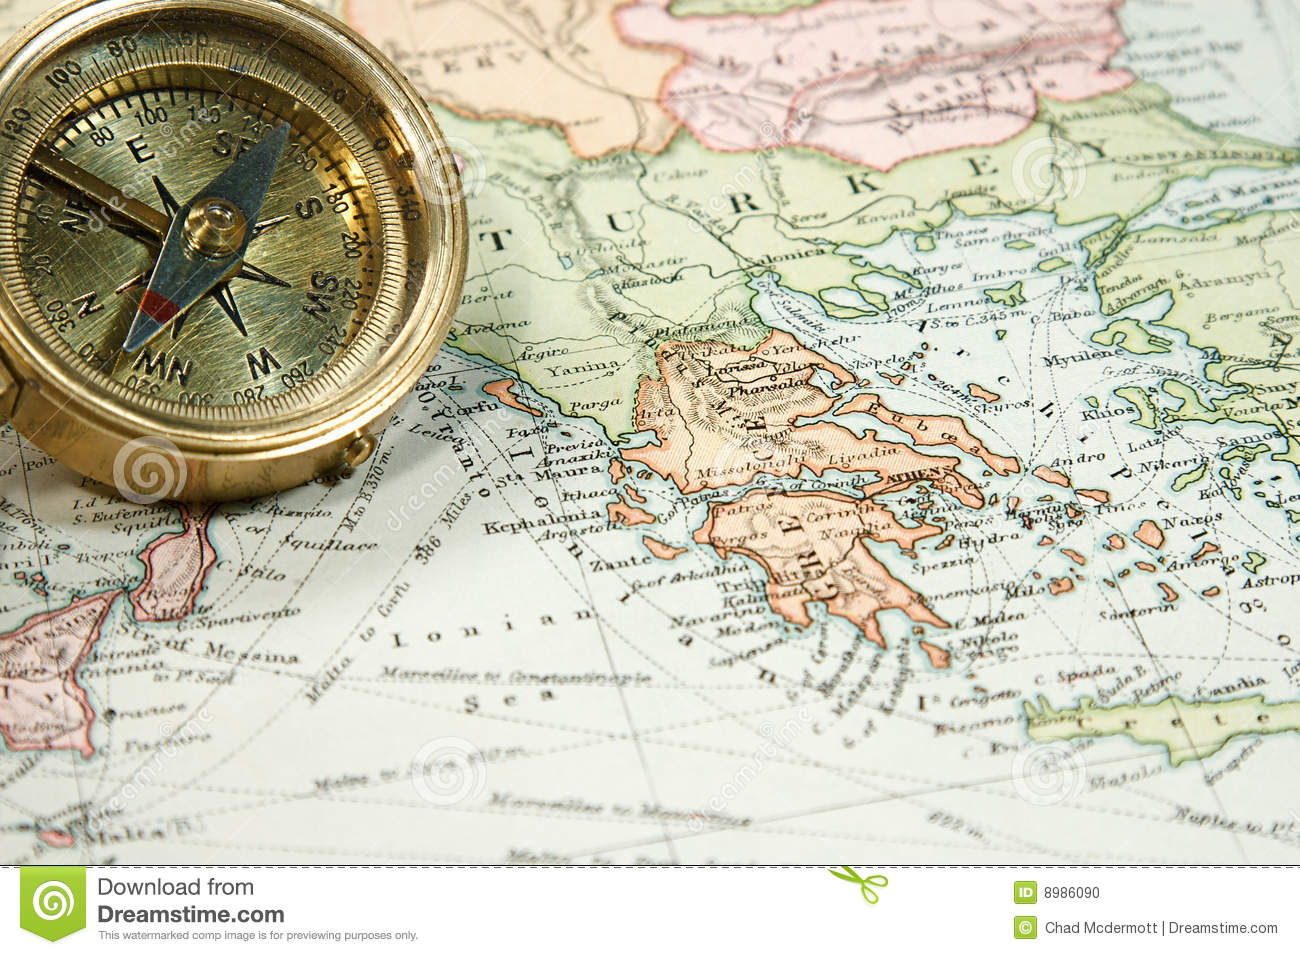 Download Vintage Map and Chart stock photo. Image of printed, magnetic - 8986090